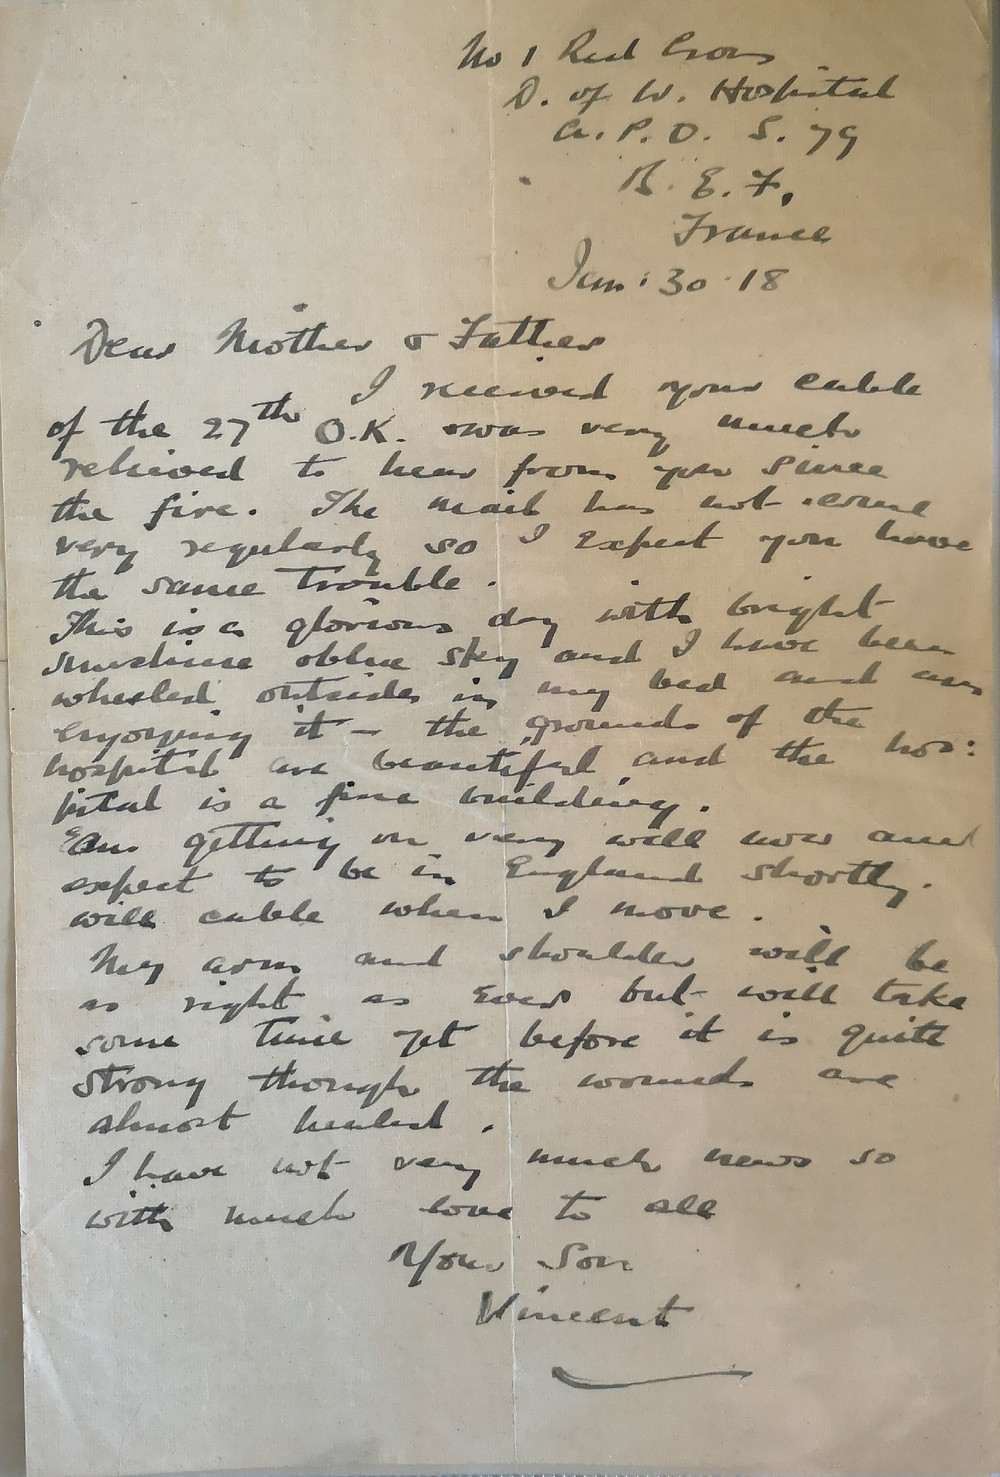 January 30, 1918 letter home from the Duchess of Westminster Hospital France